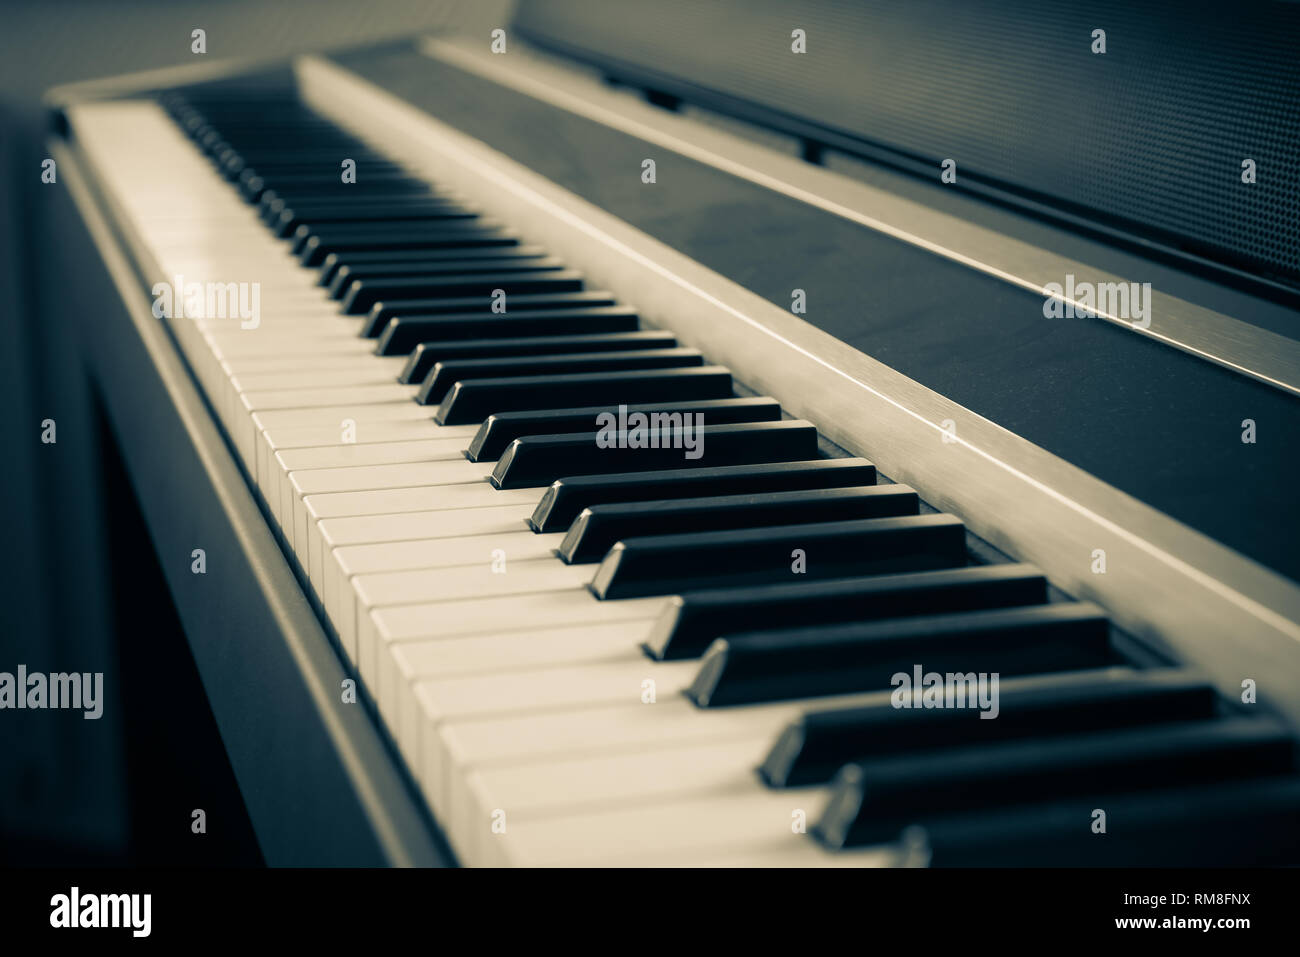 Piano keys closeup for electronic music production - Stock Image